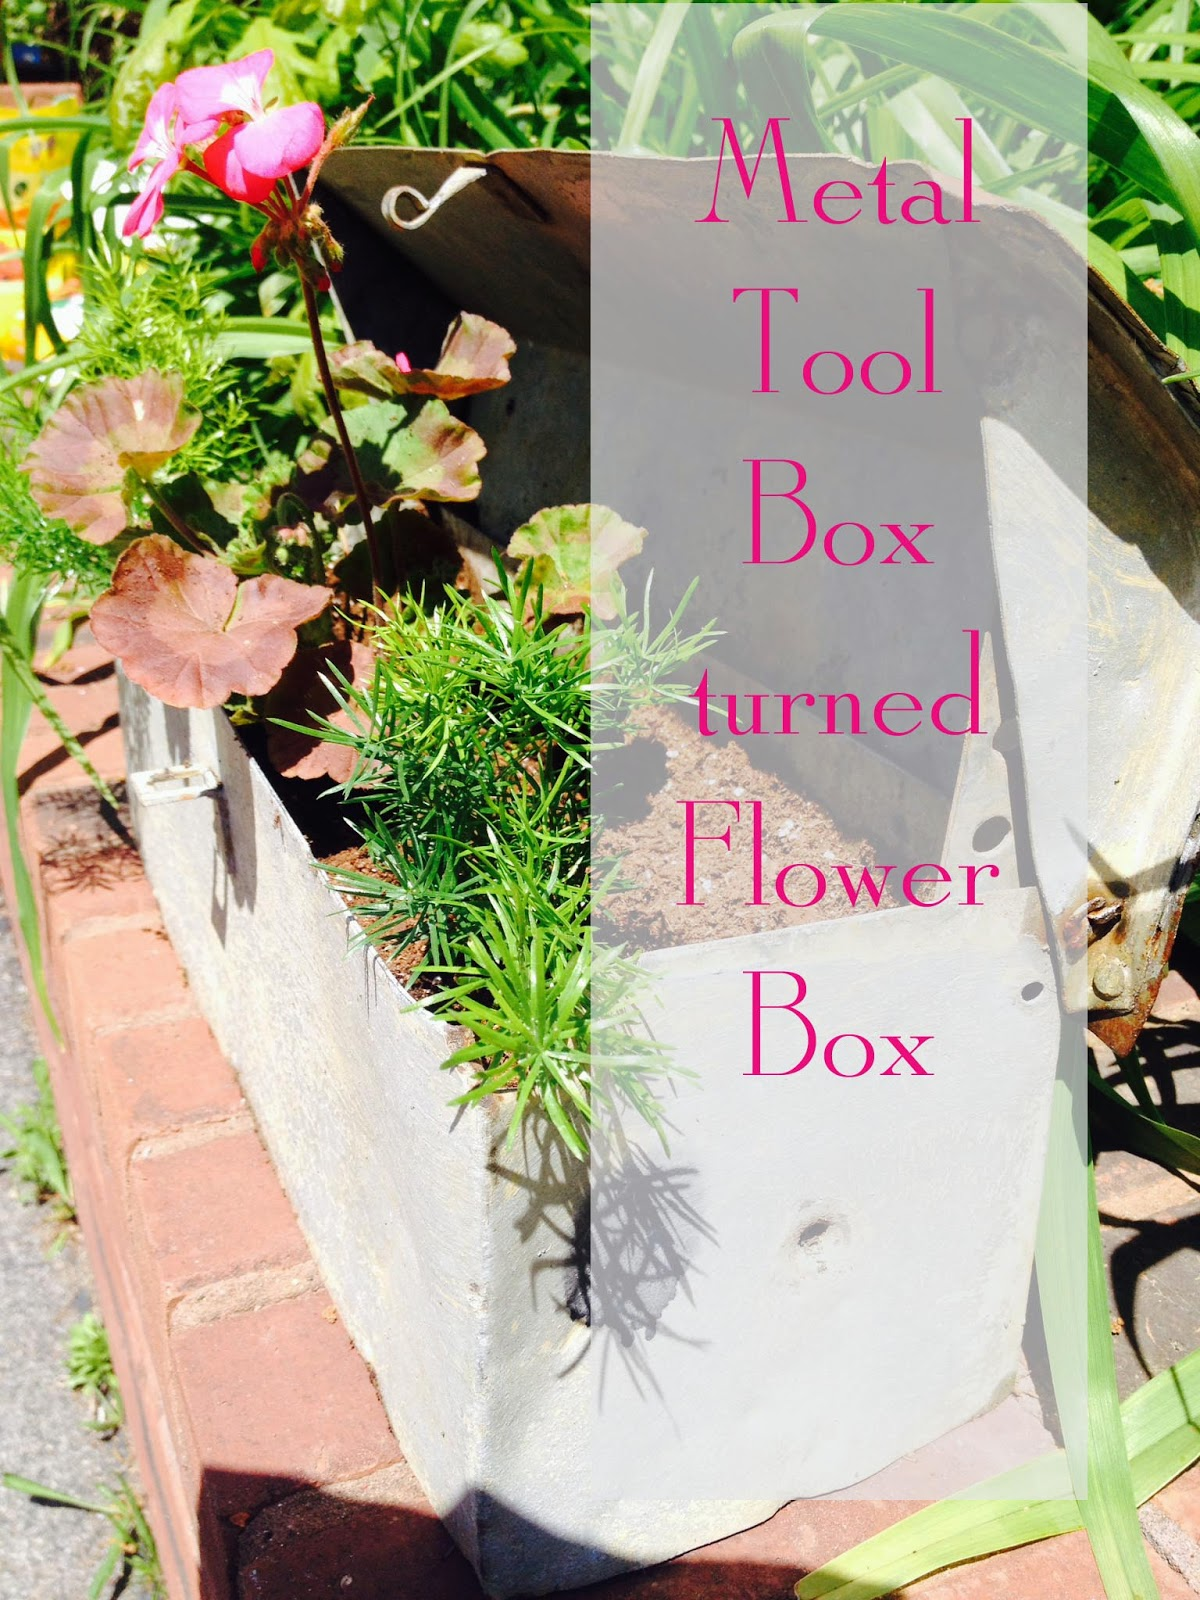 amazing repurpose of metal tool box into flower box